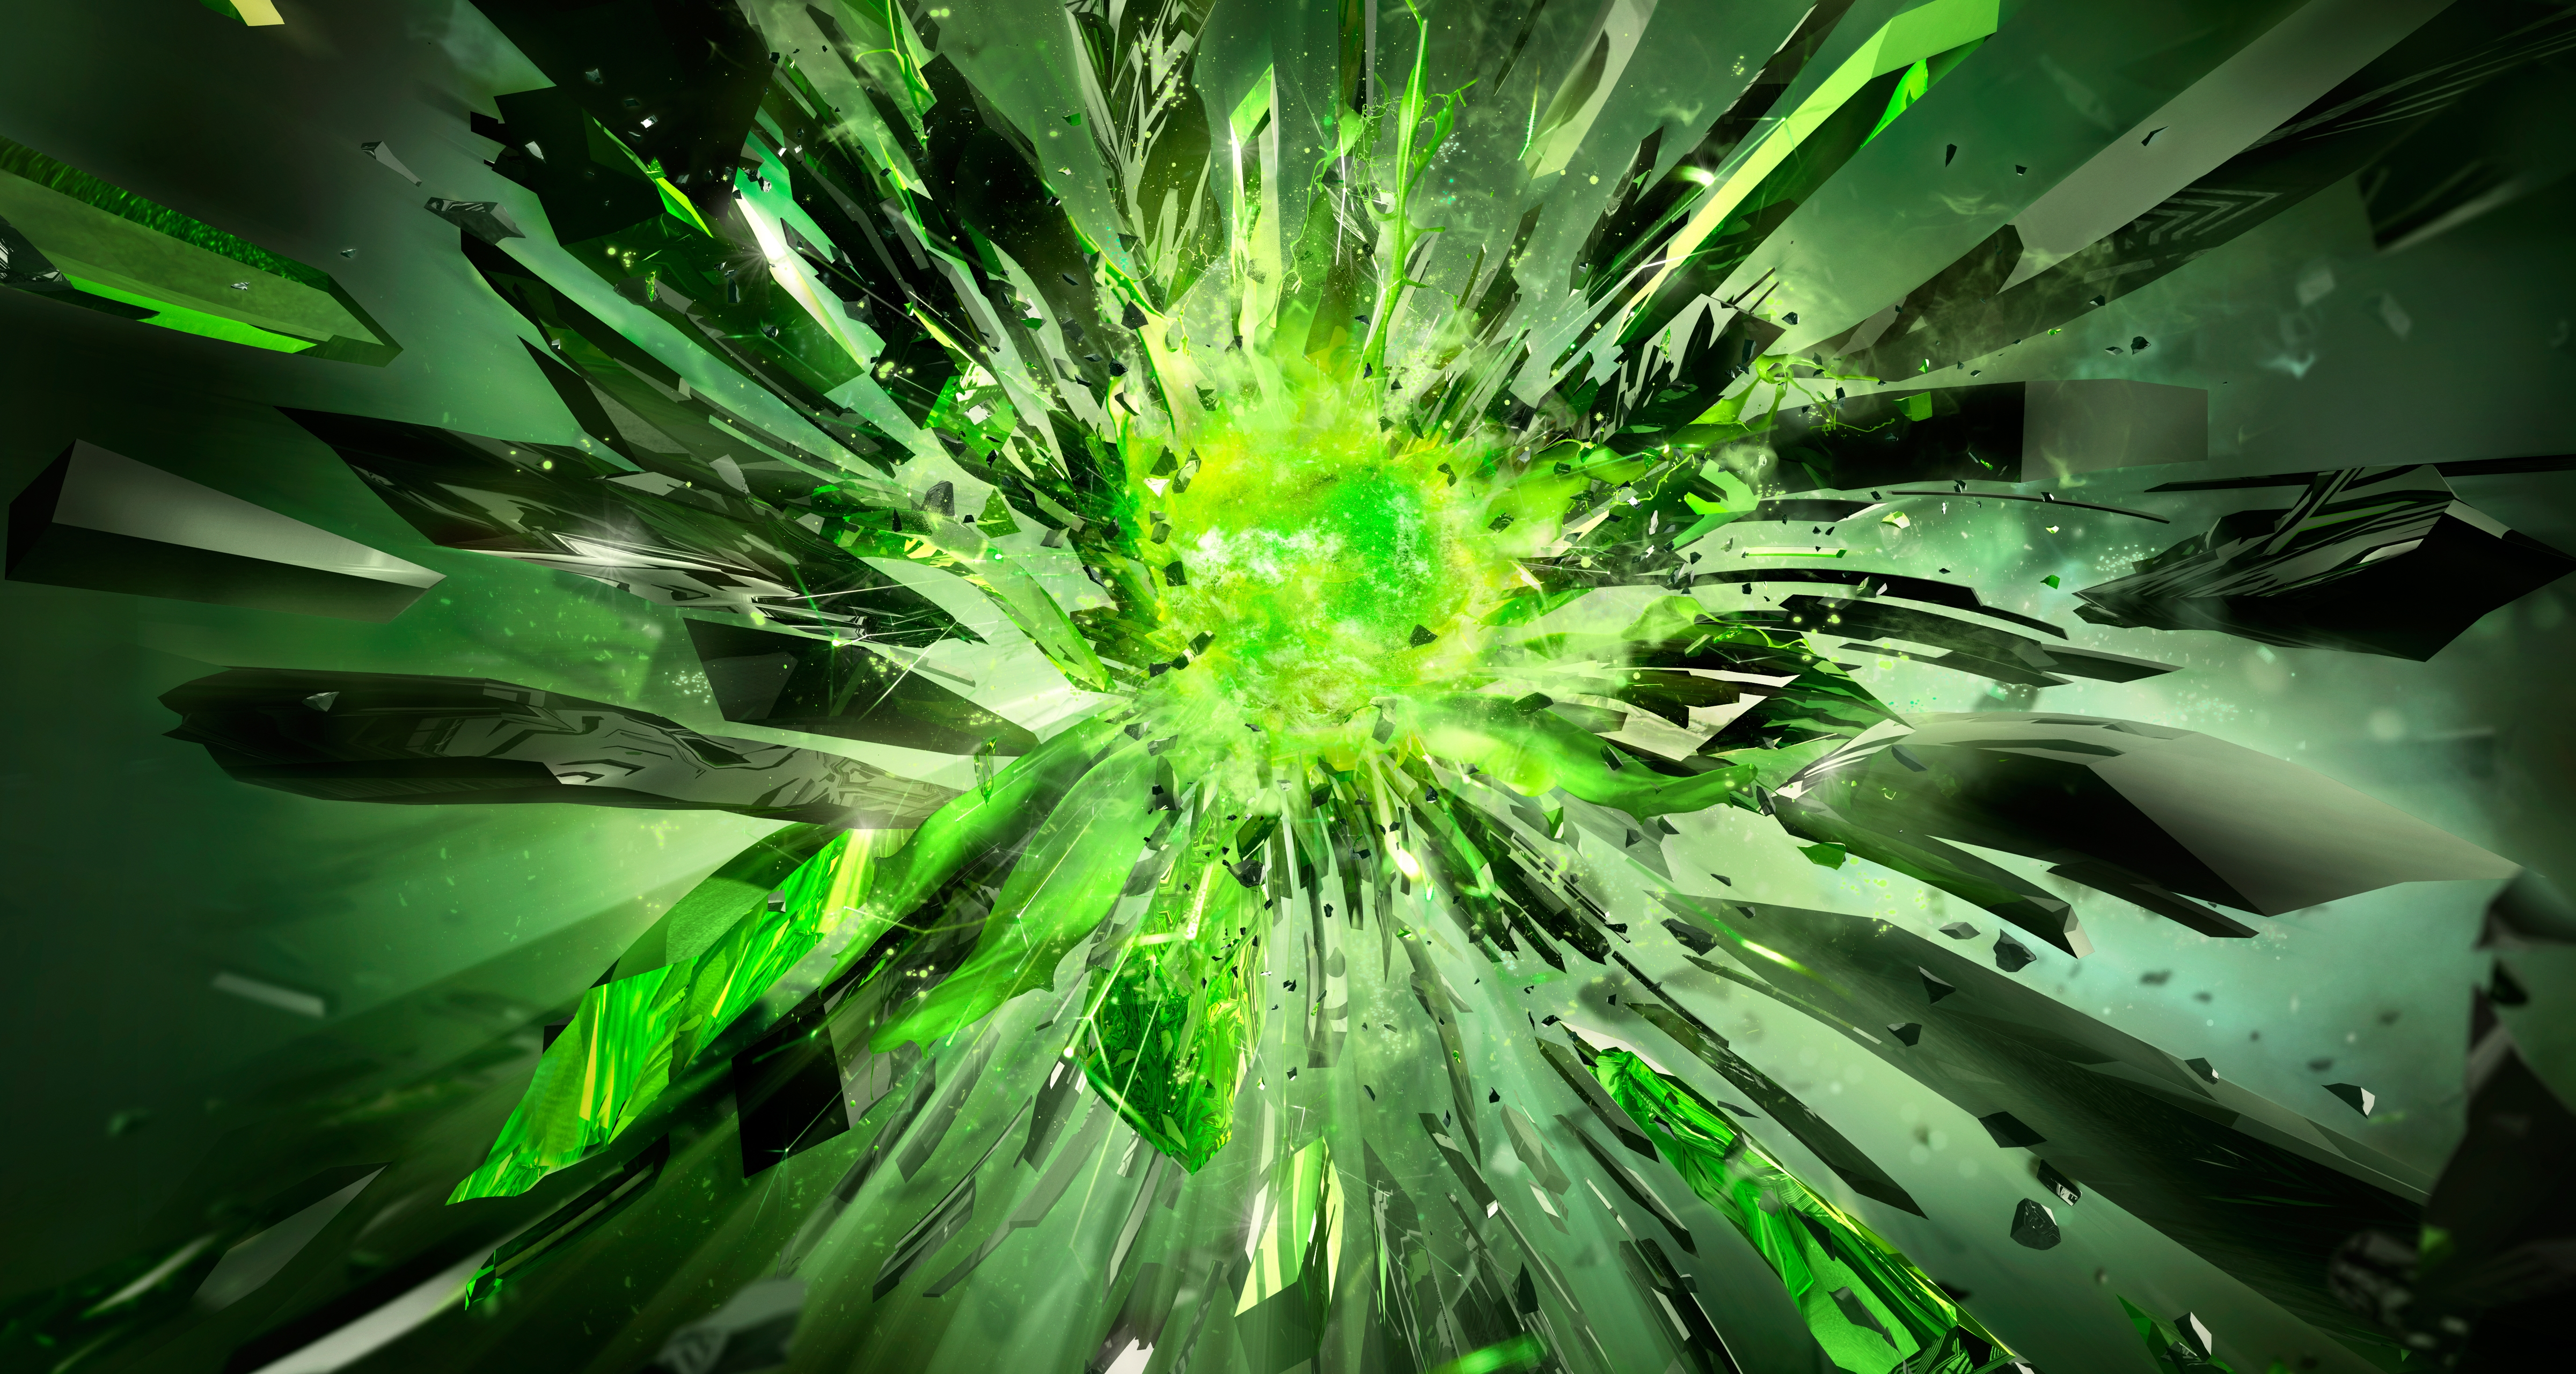 116340 download wallpaper Abstract, Crystals, Shards, Smithereens, Explosion, Shine, Light screensavers and pictures for free